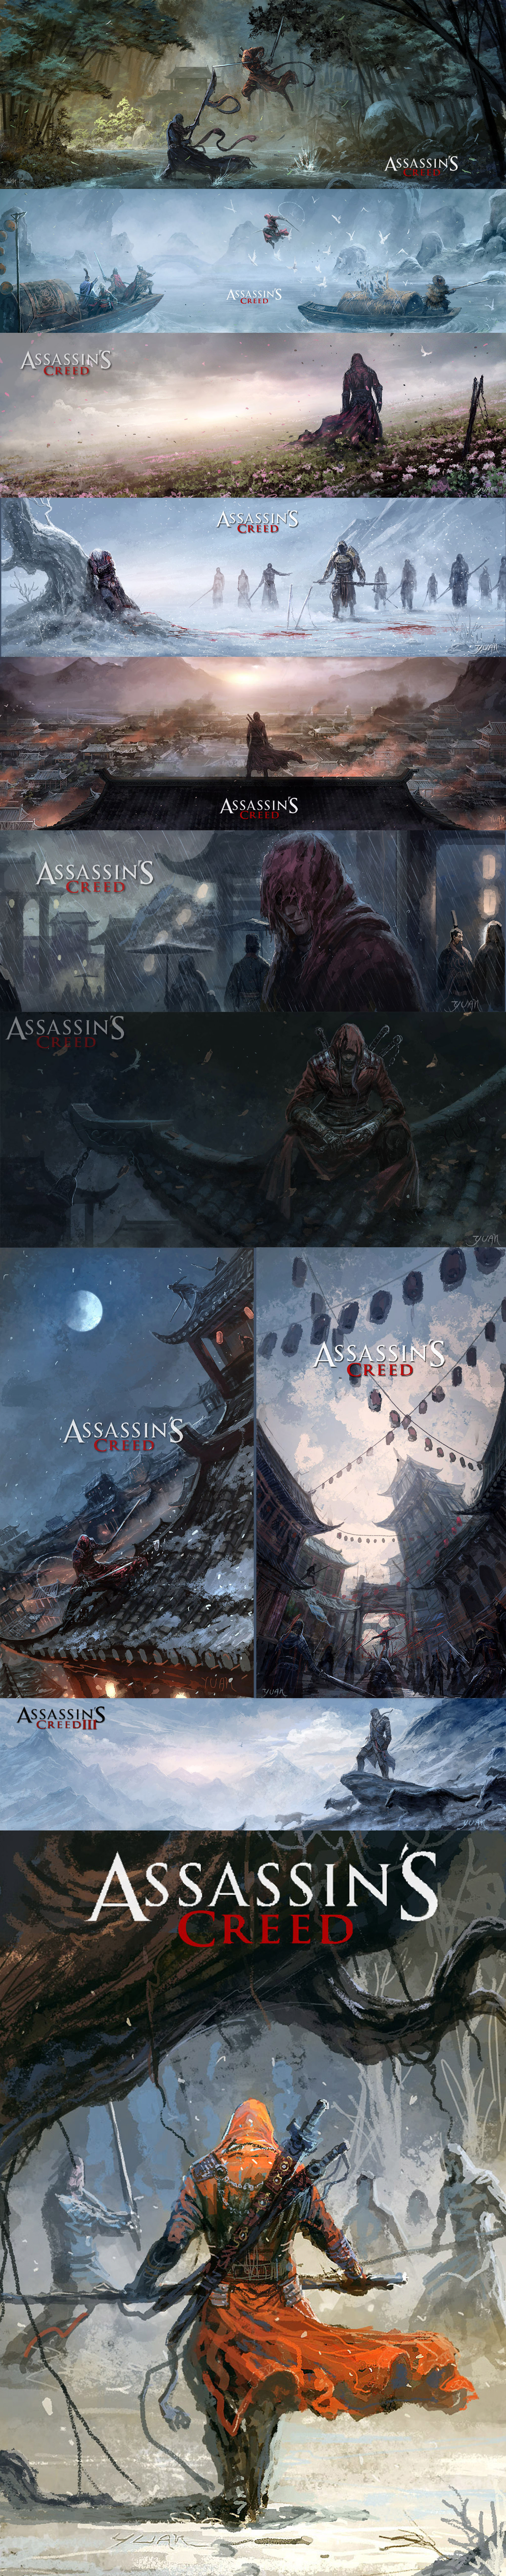 Assassin S Creed China Concept Art Assassinscreed